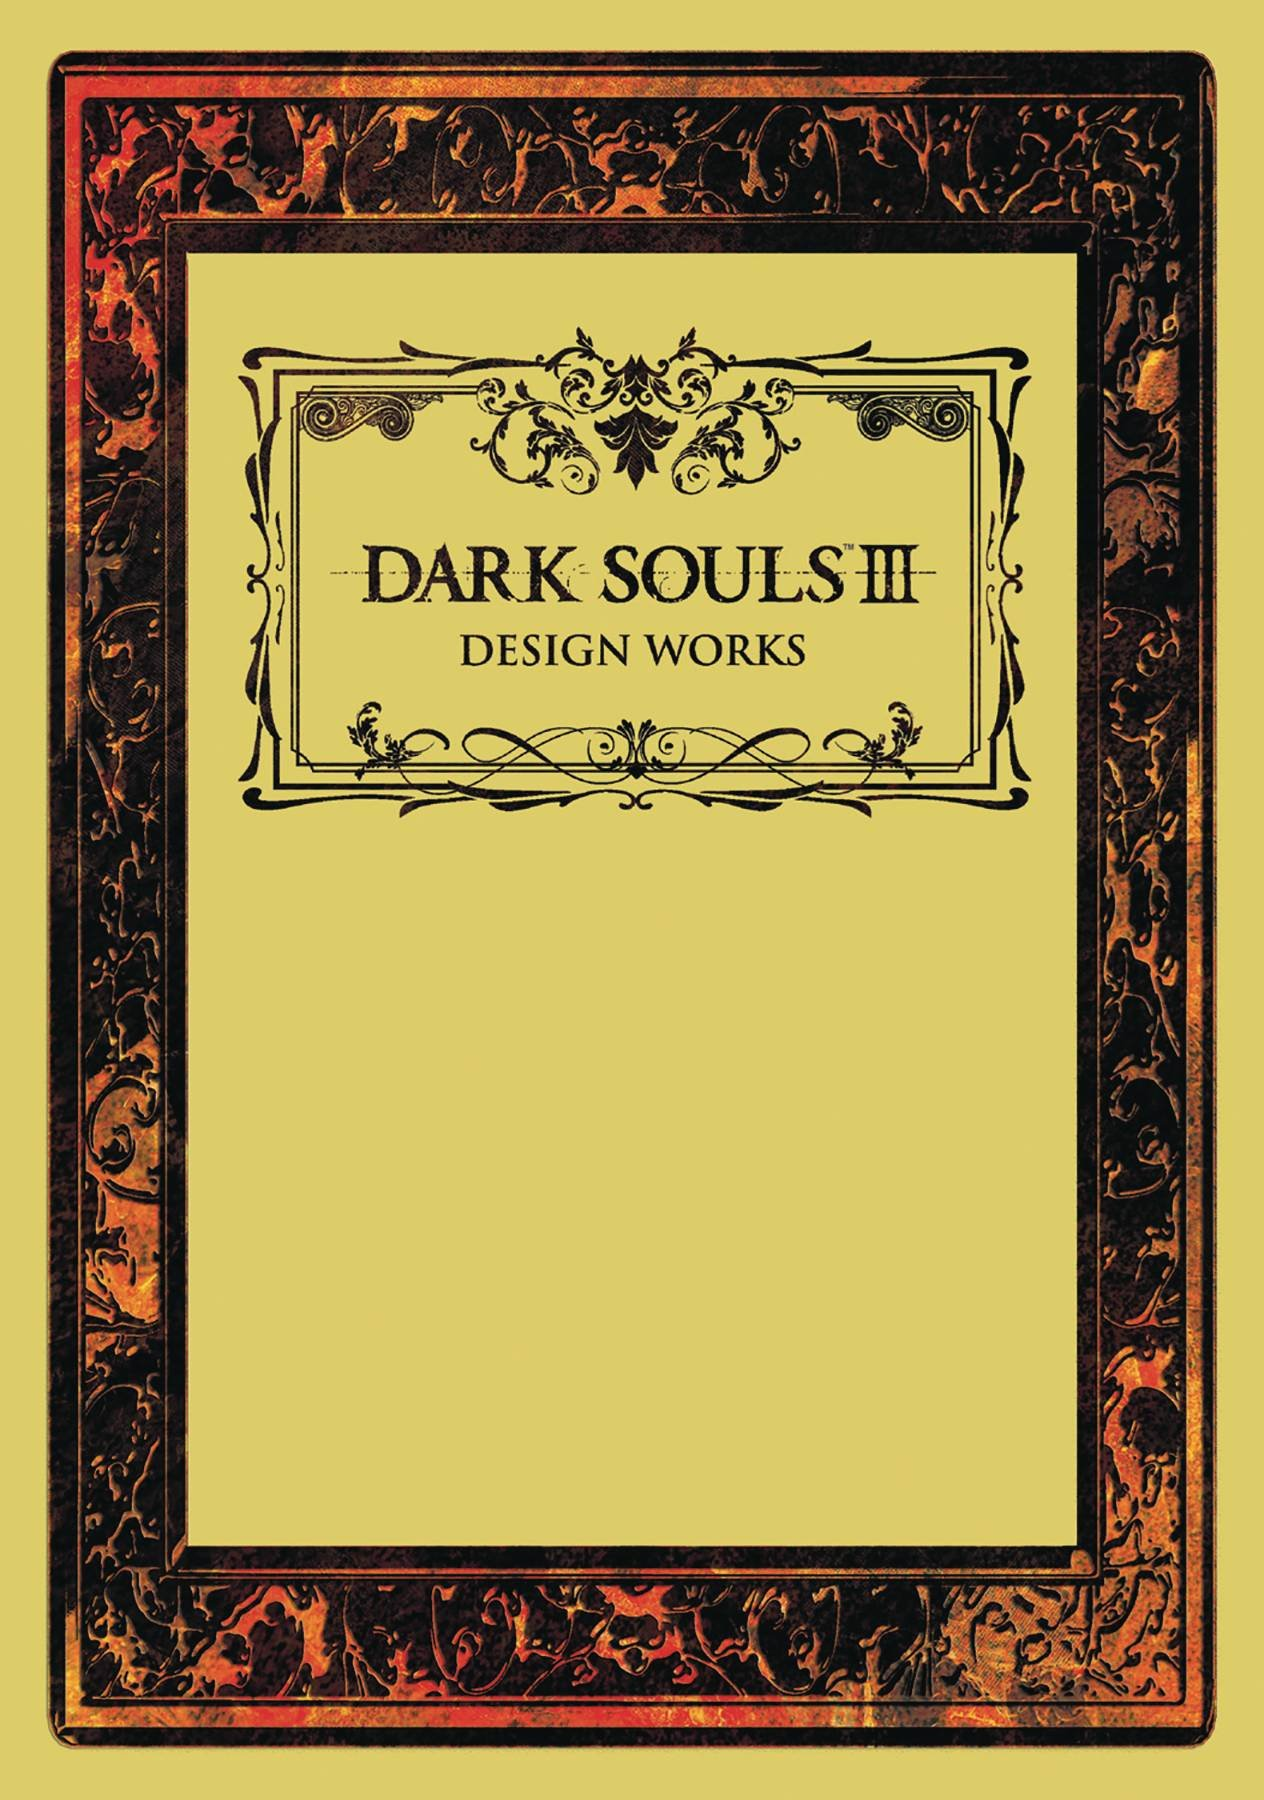 Dark Souls 3 artbook